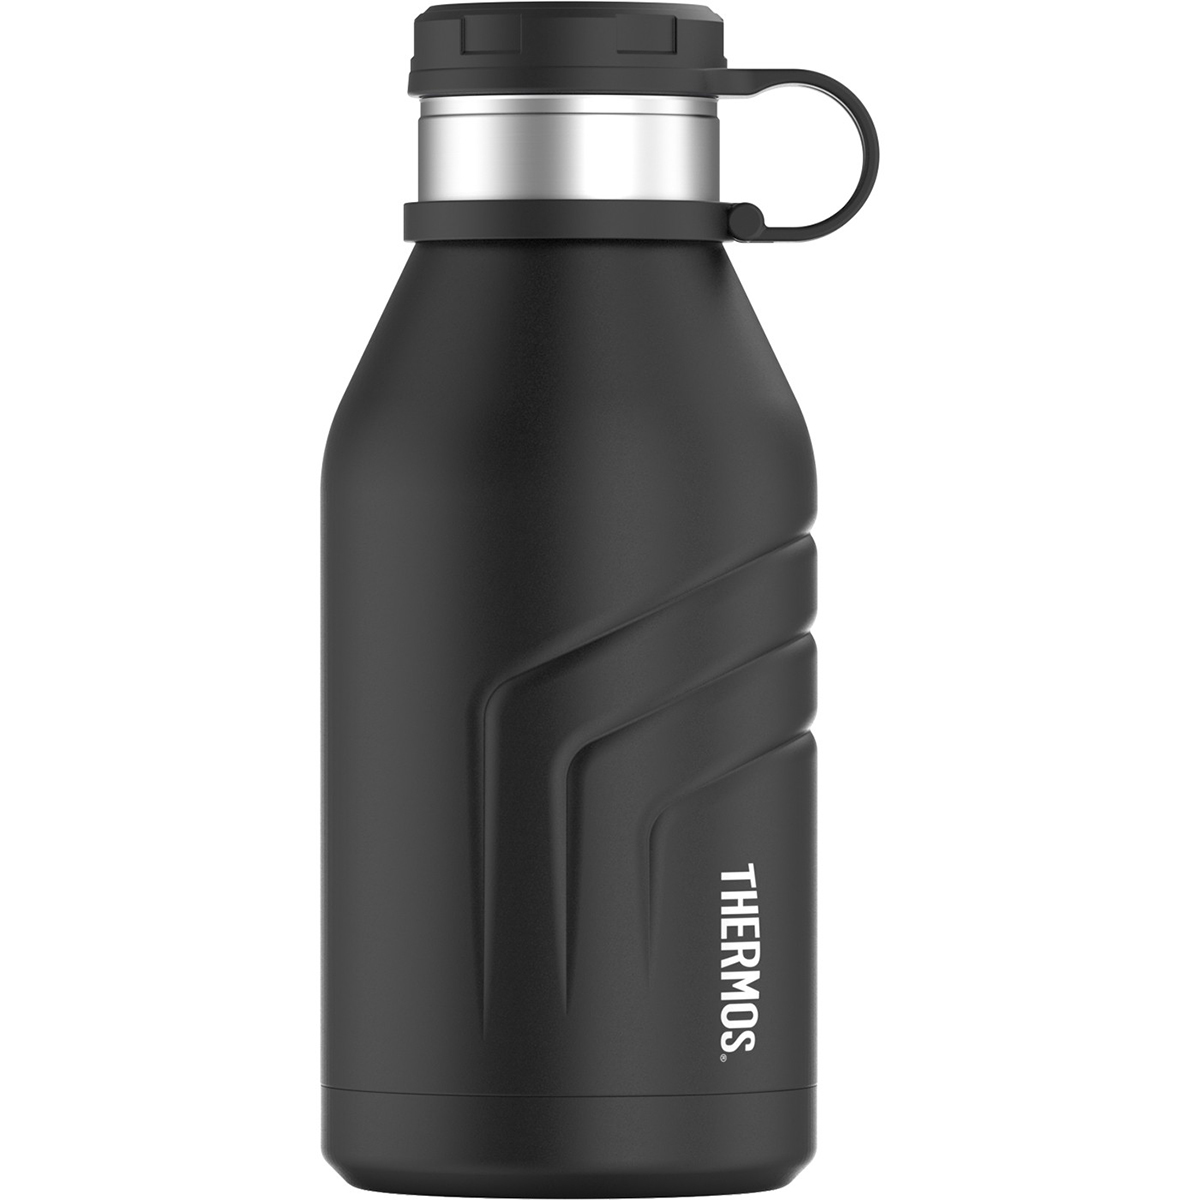 32oz Stainless Steel Vacuum Insulated BOTTLE Coffee Container Thermos Beverage